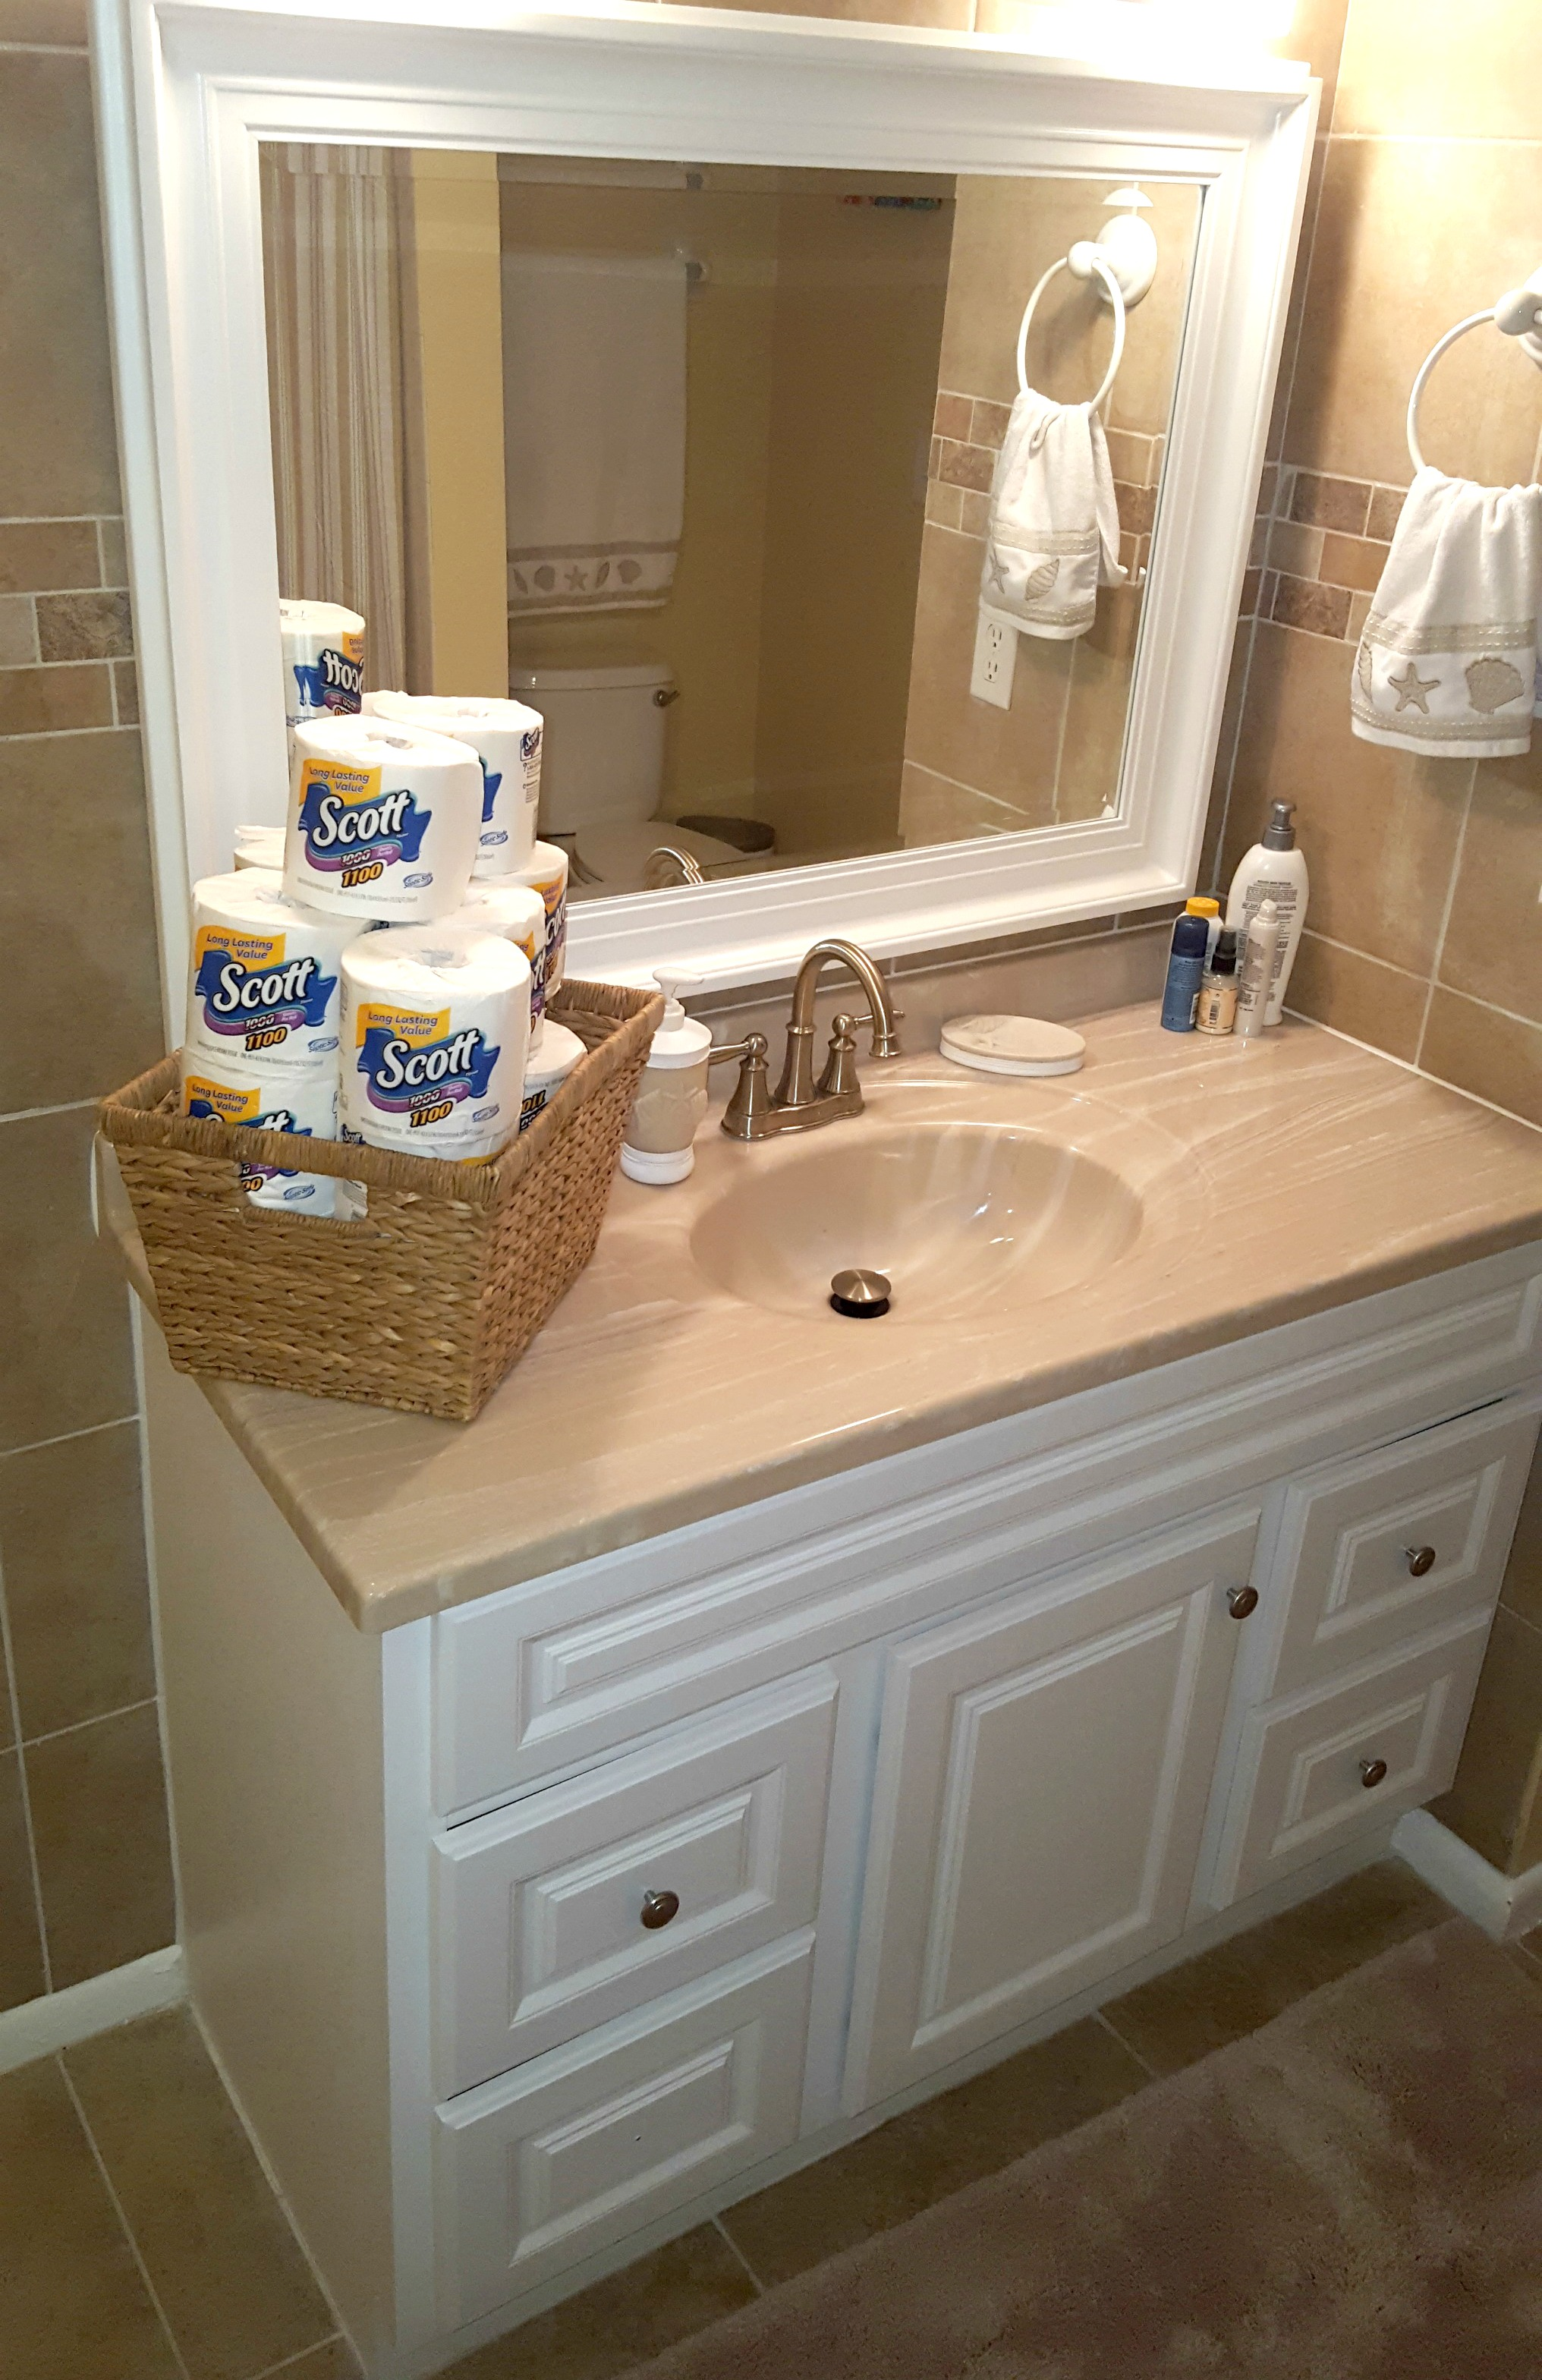 This checklist helps you keep your bathroom clean How to thoroughly clean your bathroom